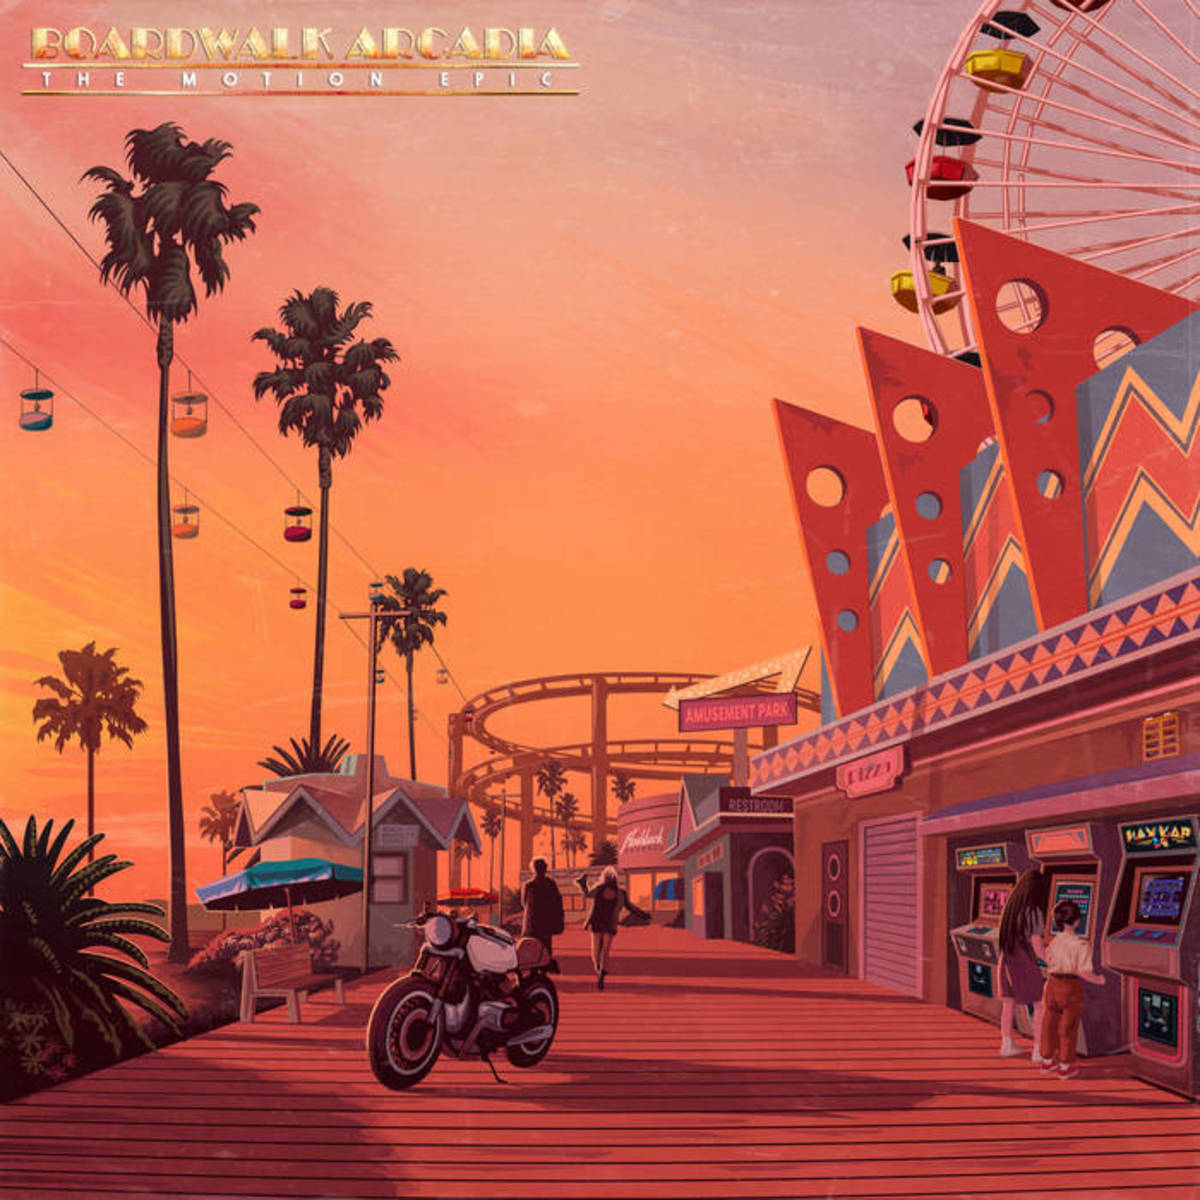 synth-album-review-boardwalk-arcadia-by-pat-dimeo-and-guests